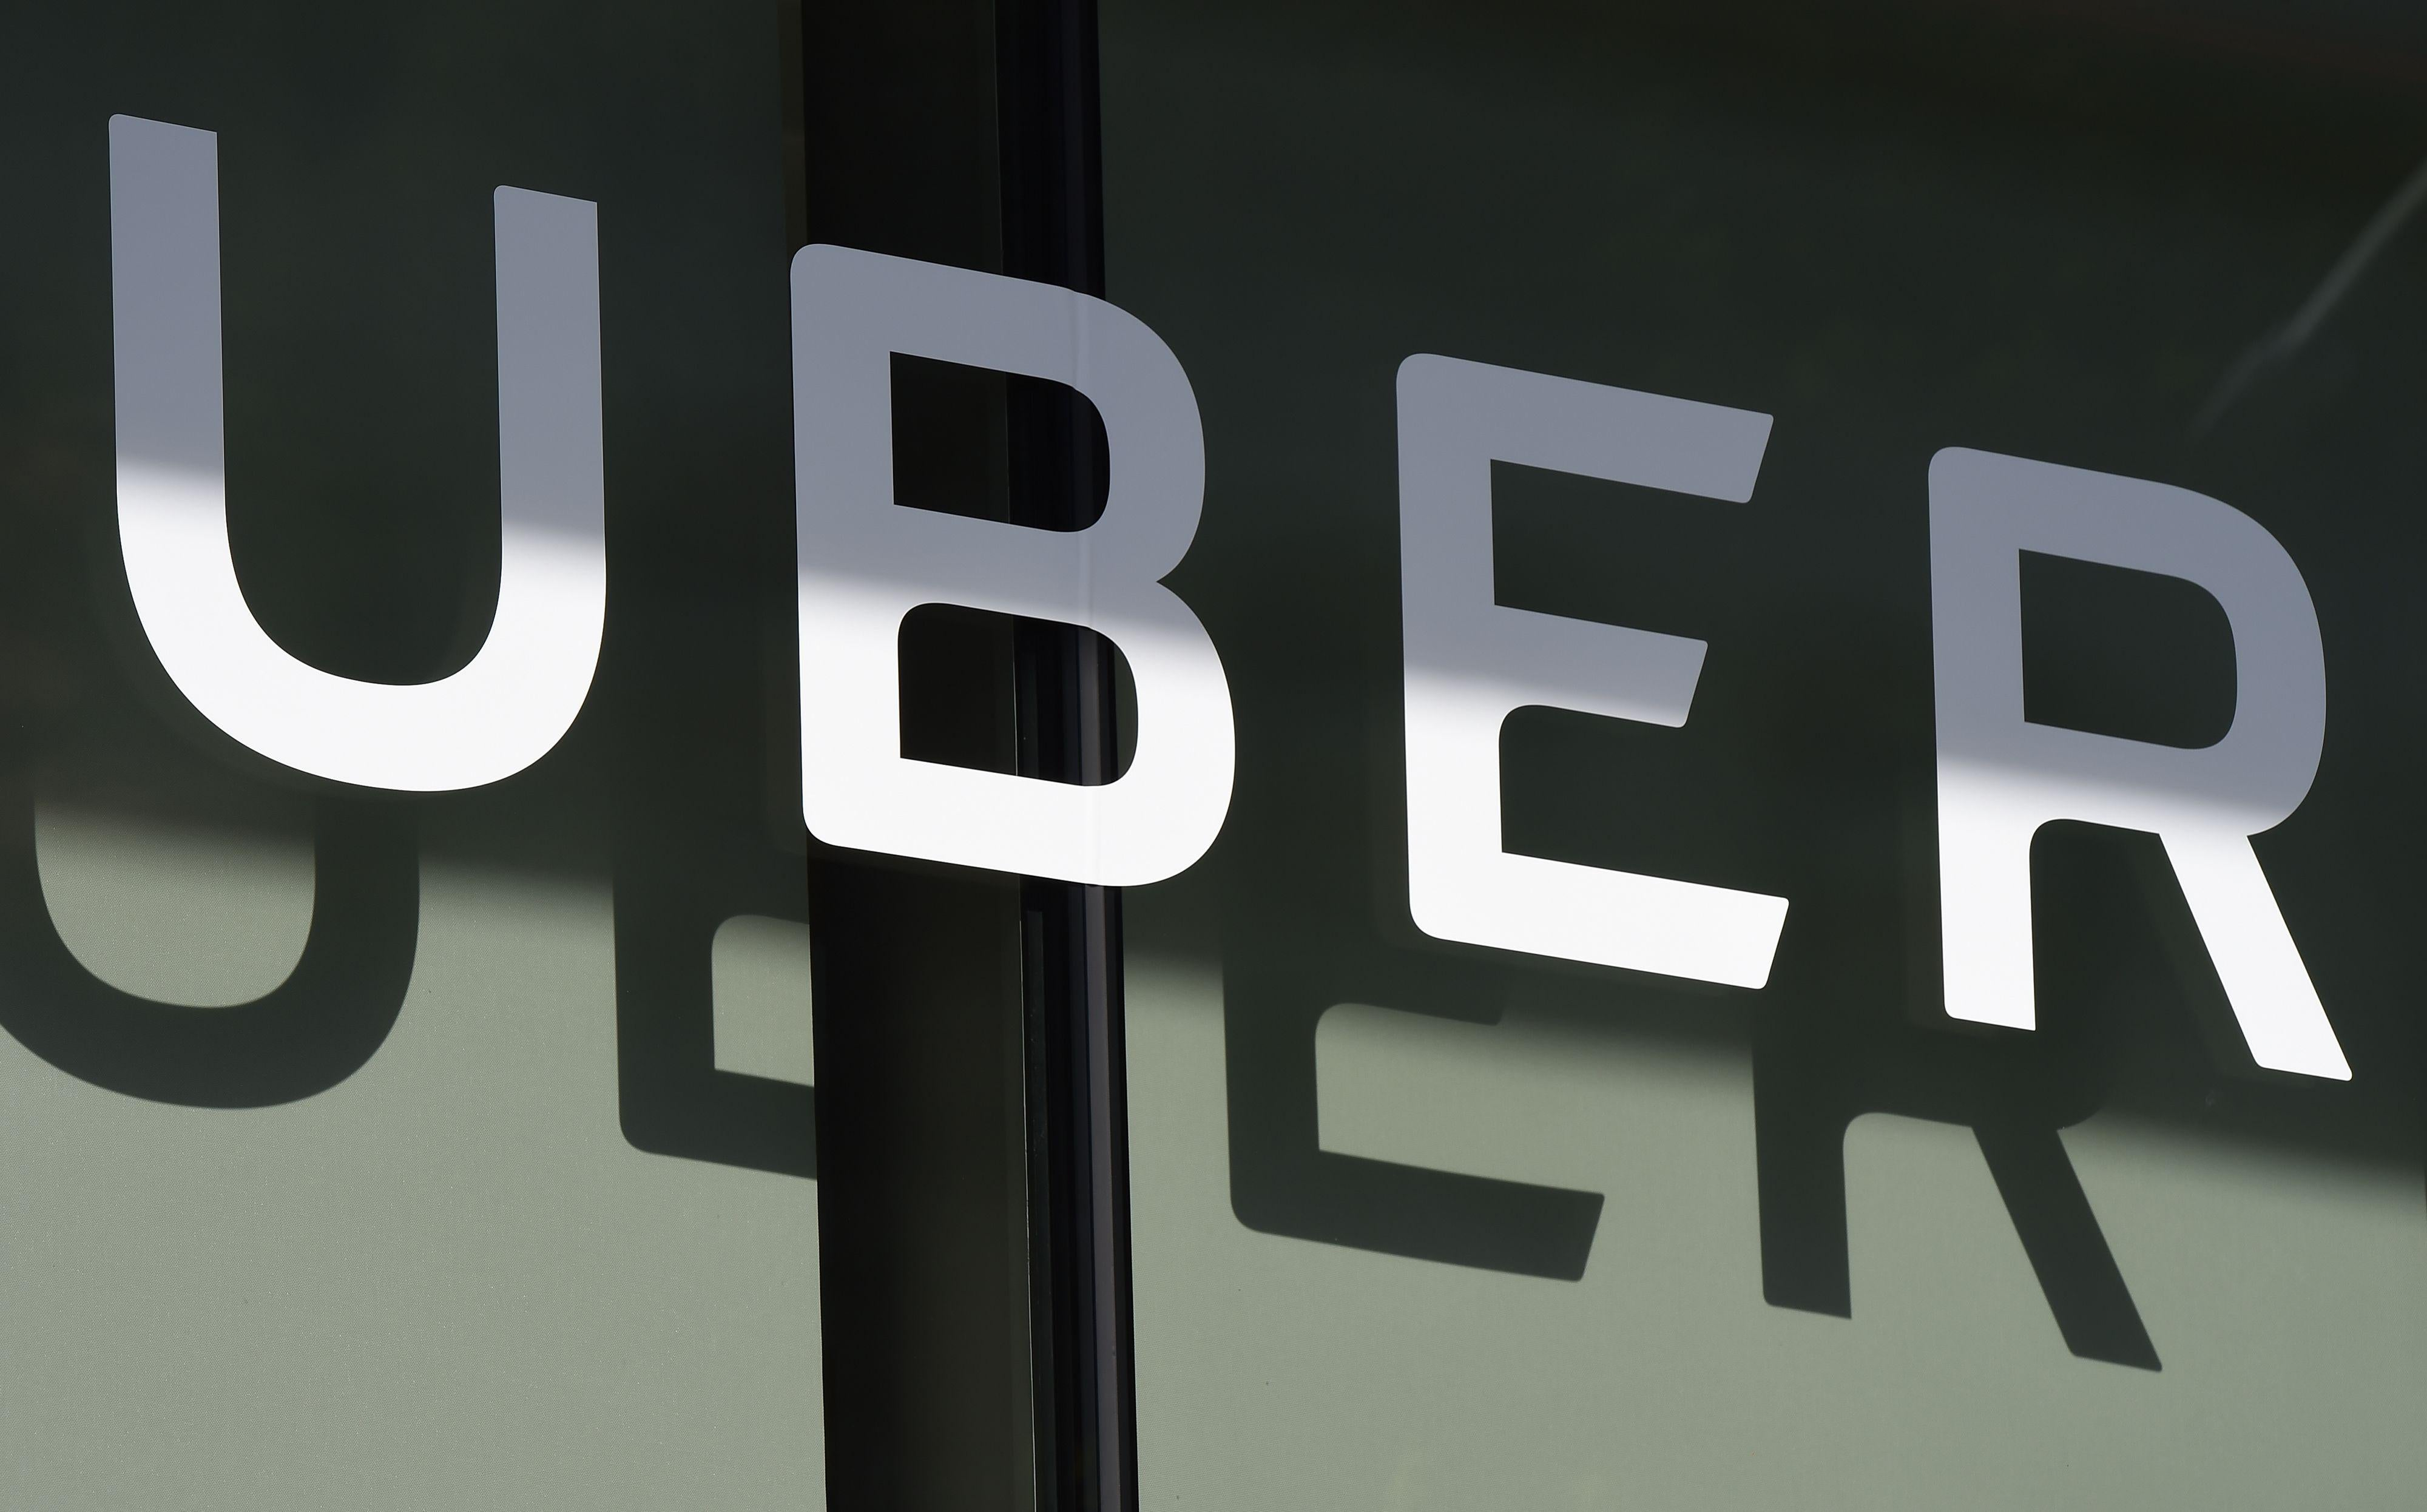 The Uber logo is seen at the second annual Uber Elevate Summit, on May 8, 2018 at the Skirball Center in Los Angeles, California. - Uber introduced it's electric powered 'flying taxi' vertical take-off and landing concept aircraft at the event, which showcases prototypes for UberAir's fleet of airborne taxis. (Photo by Robyn Beck / AFP)        (Photo credit should read ROBYN BECK/AFP/Getty Images)